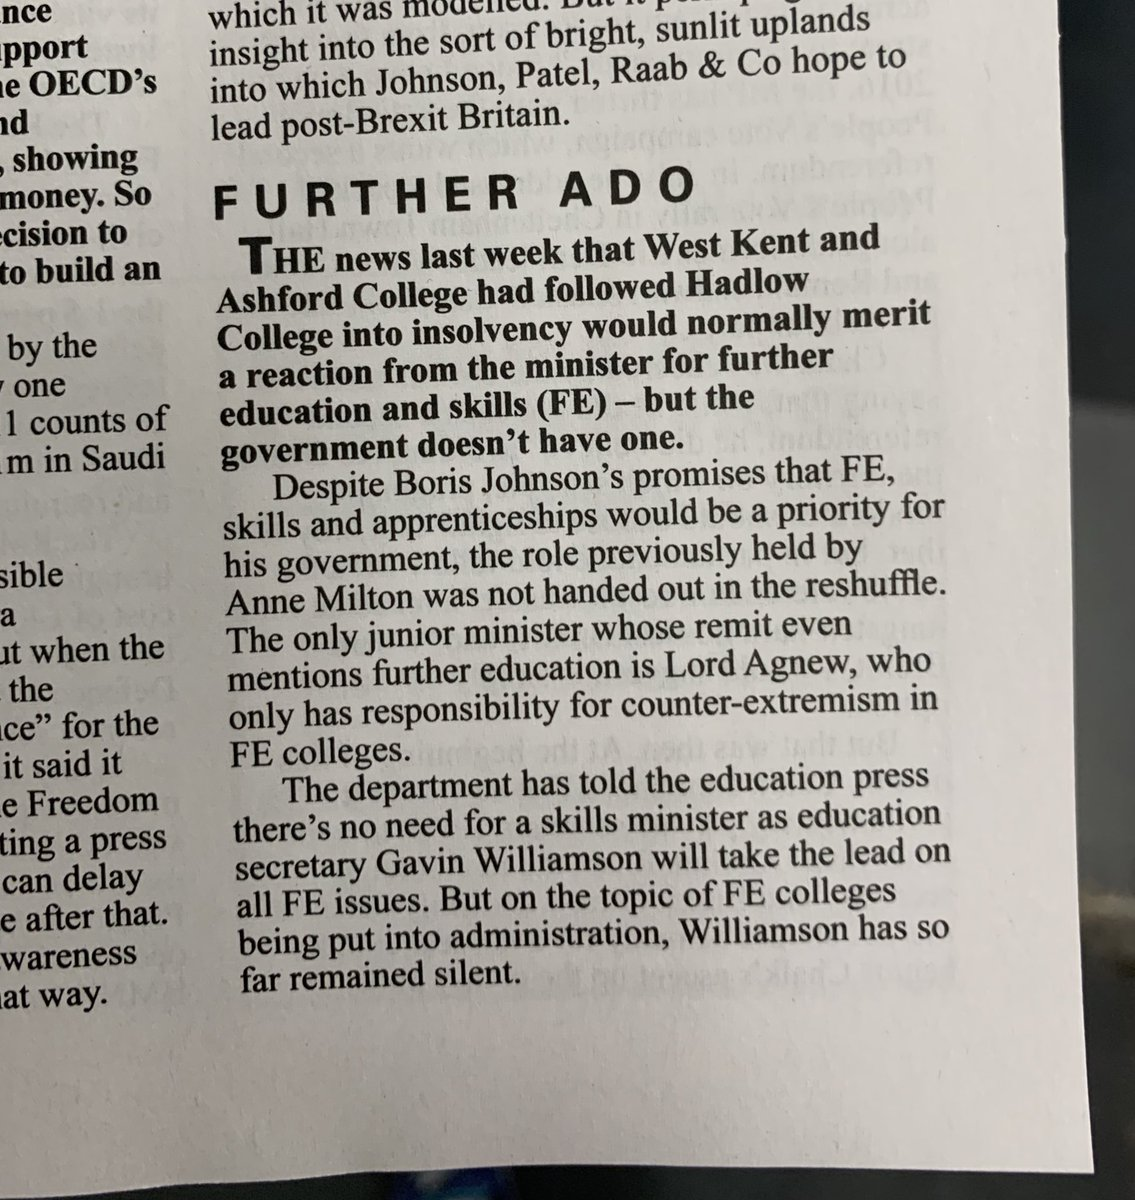 I agree with Private Eye. Lack of an FE minister ain't a good thing